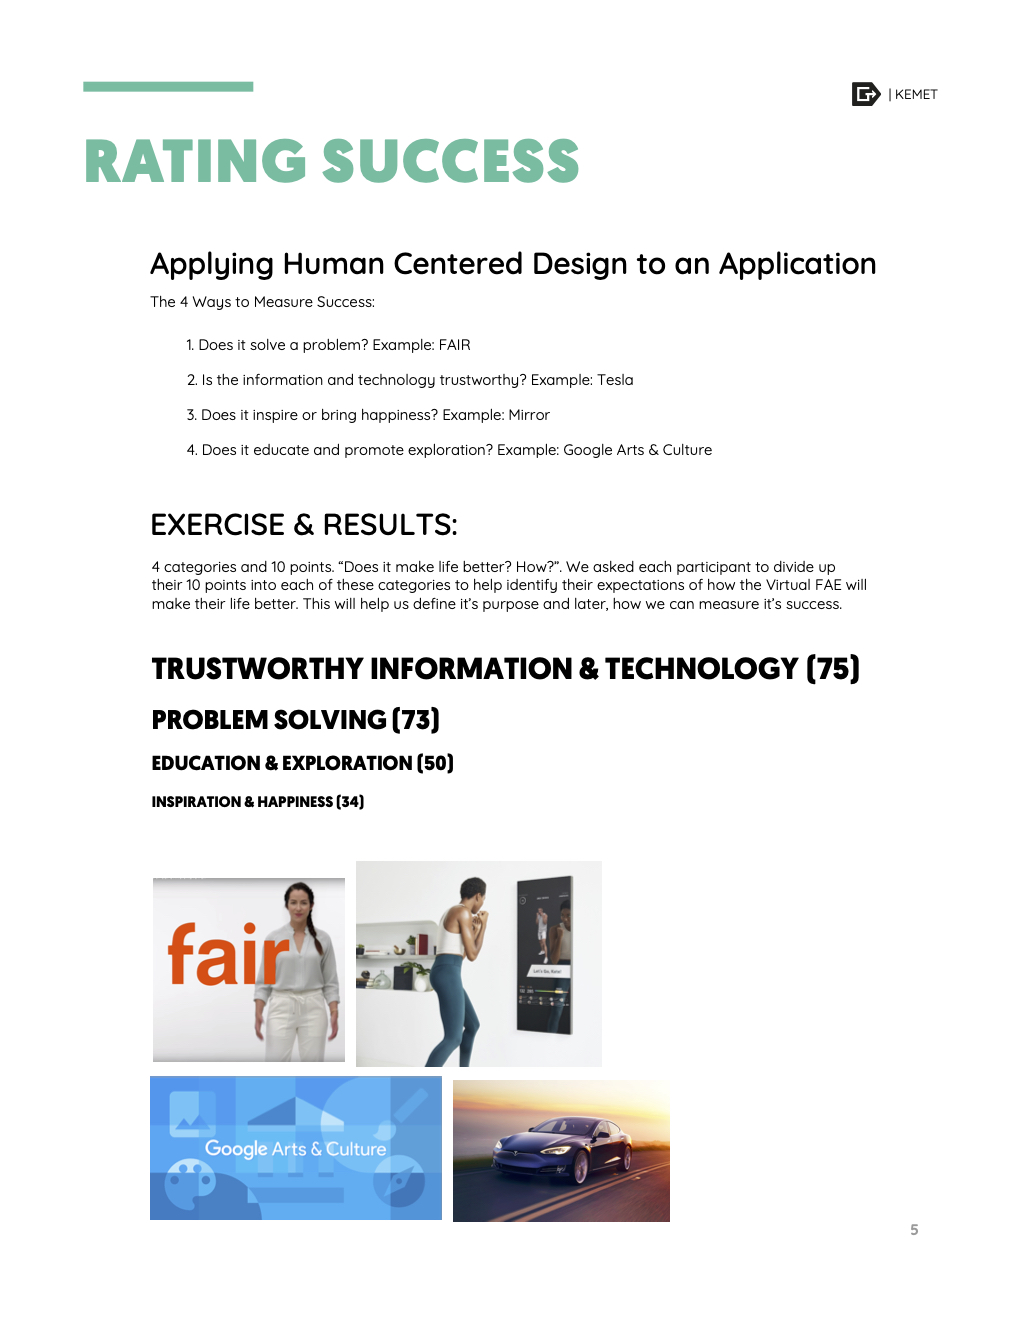 Rating success deliverable with examples.